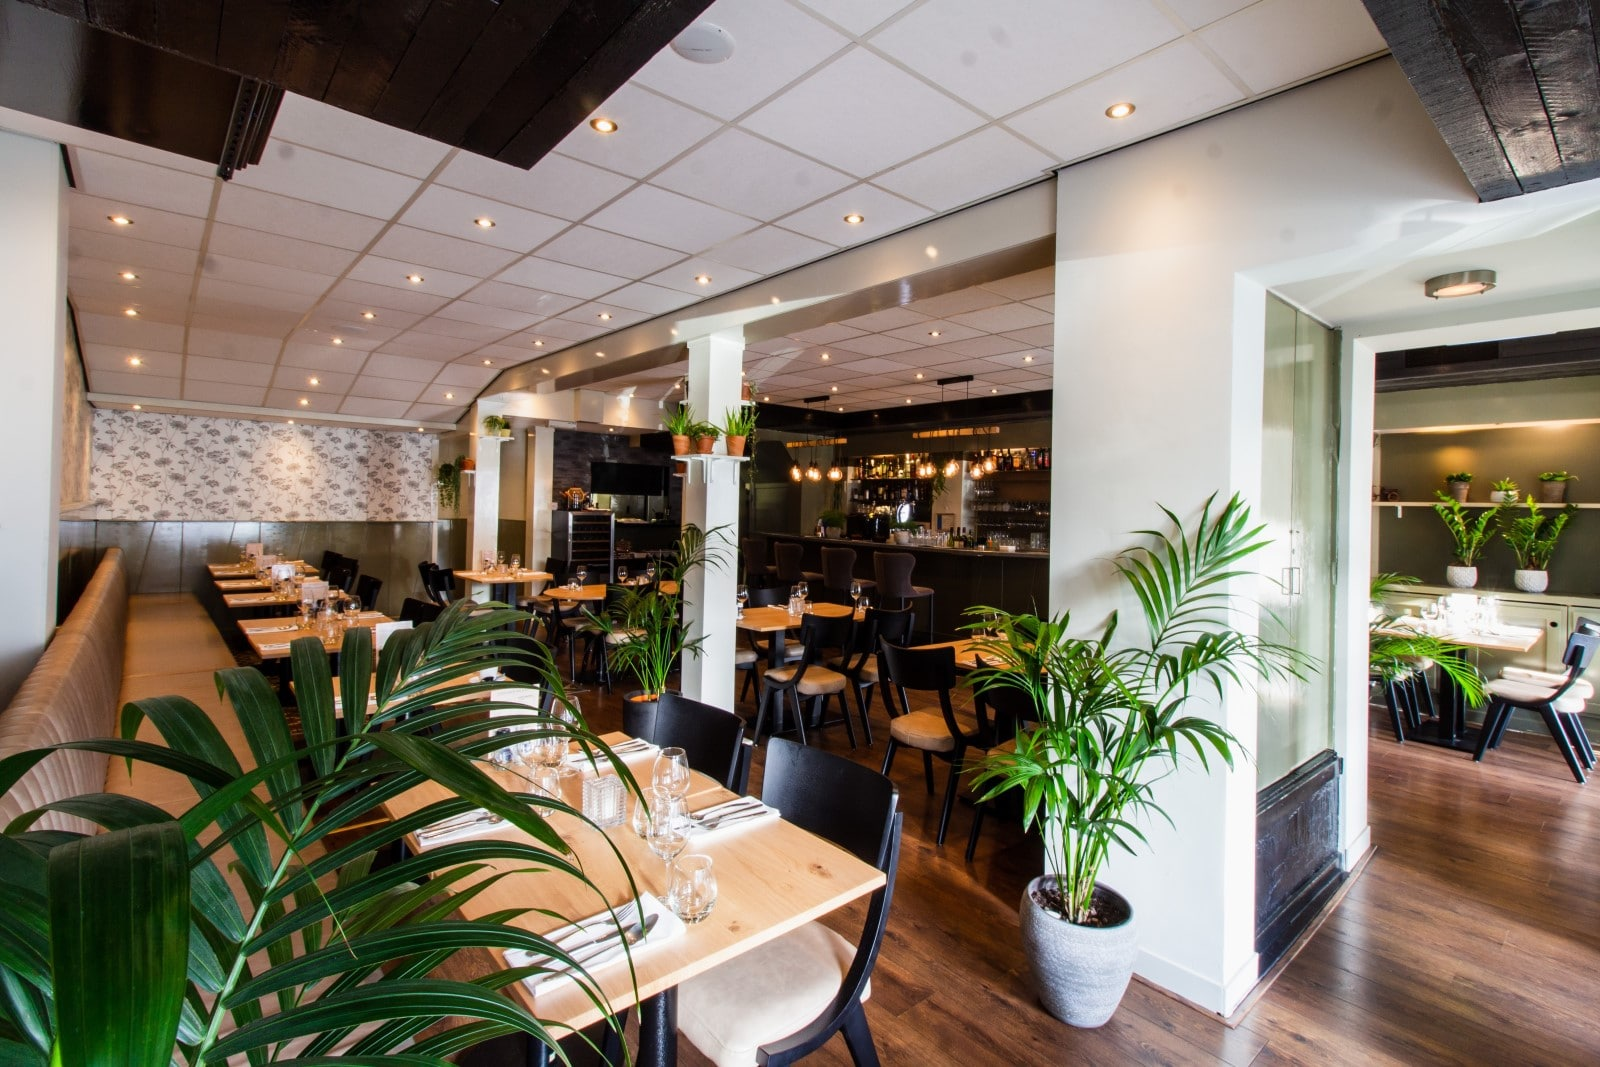 lush greenery in a modernly decorated restaurant and bar space